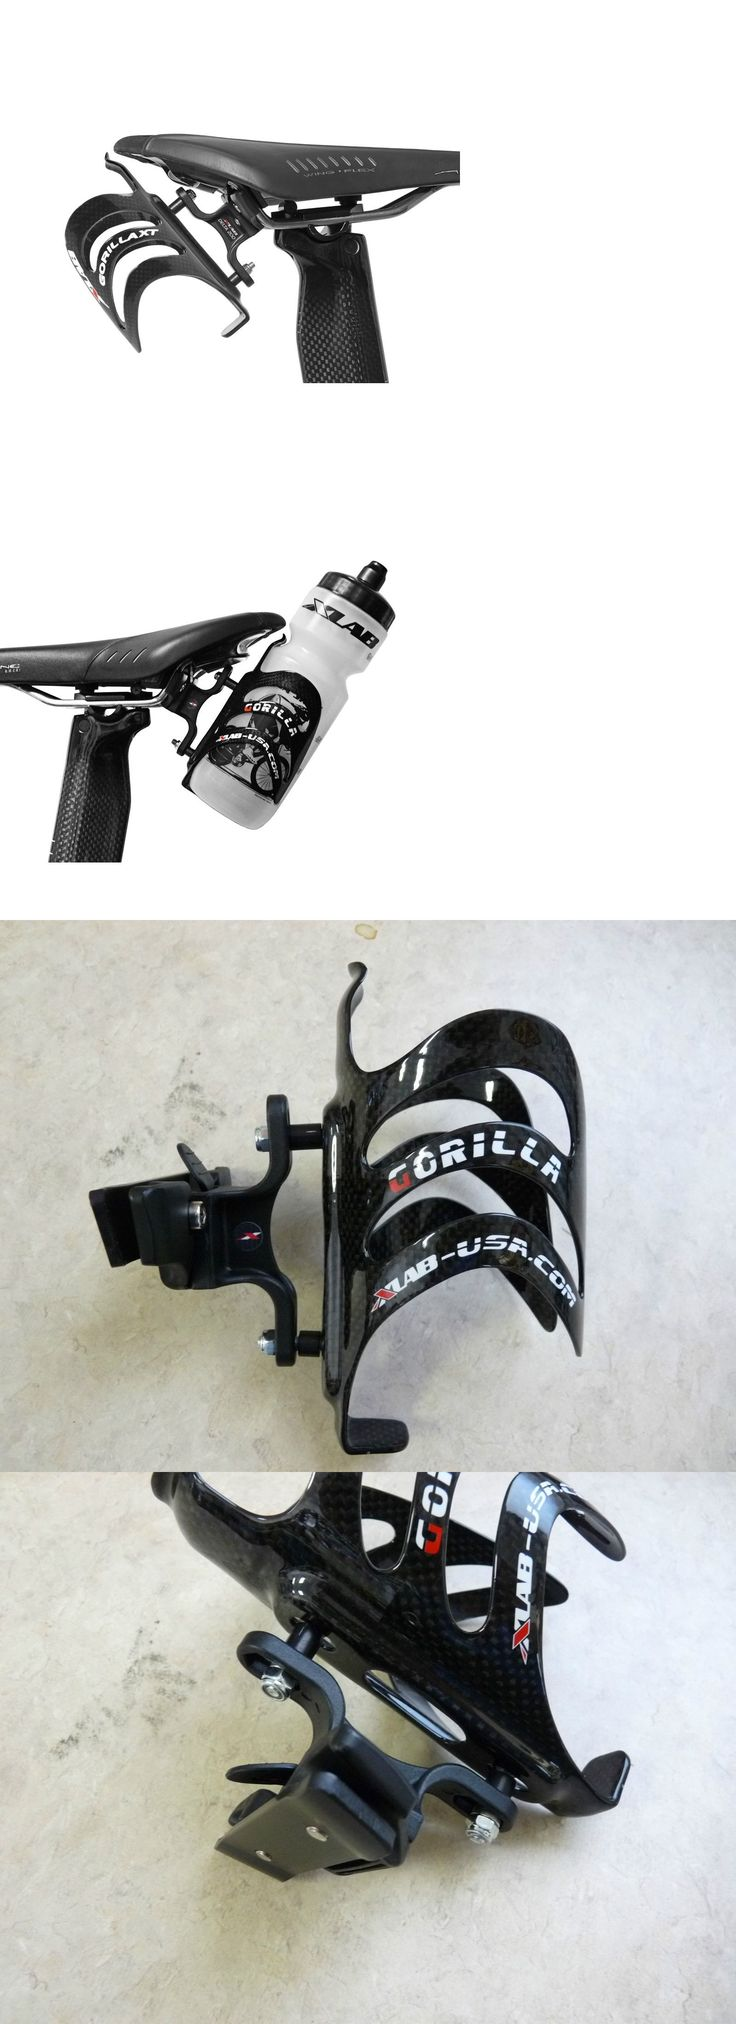 Water Bottles and Cages 62132: Xlab Delta Wing 200 Rear Bicycle Water Bottle Cage-Black-Mount-Carbon-New BUY IT NOW ONLY: $79.95